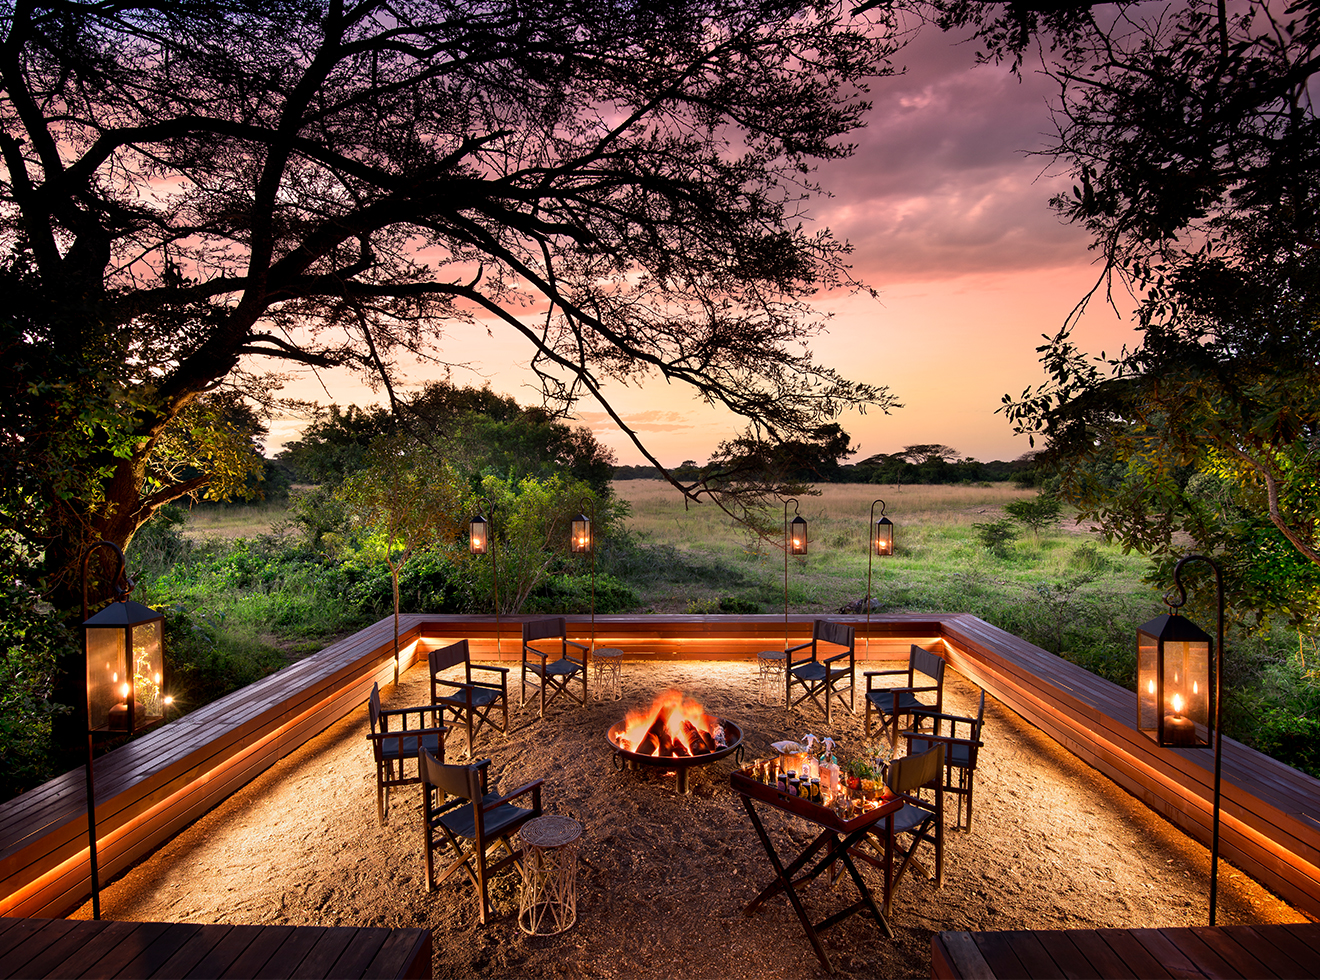 andBeyond villa in Phinda Private Game Reserve